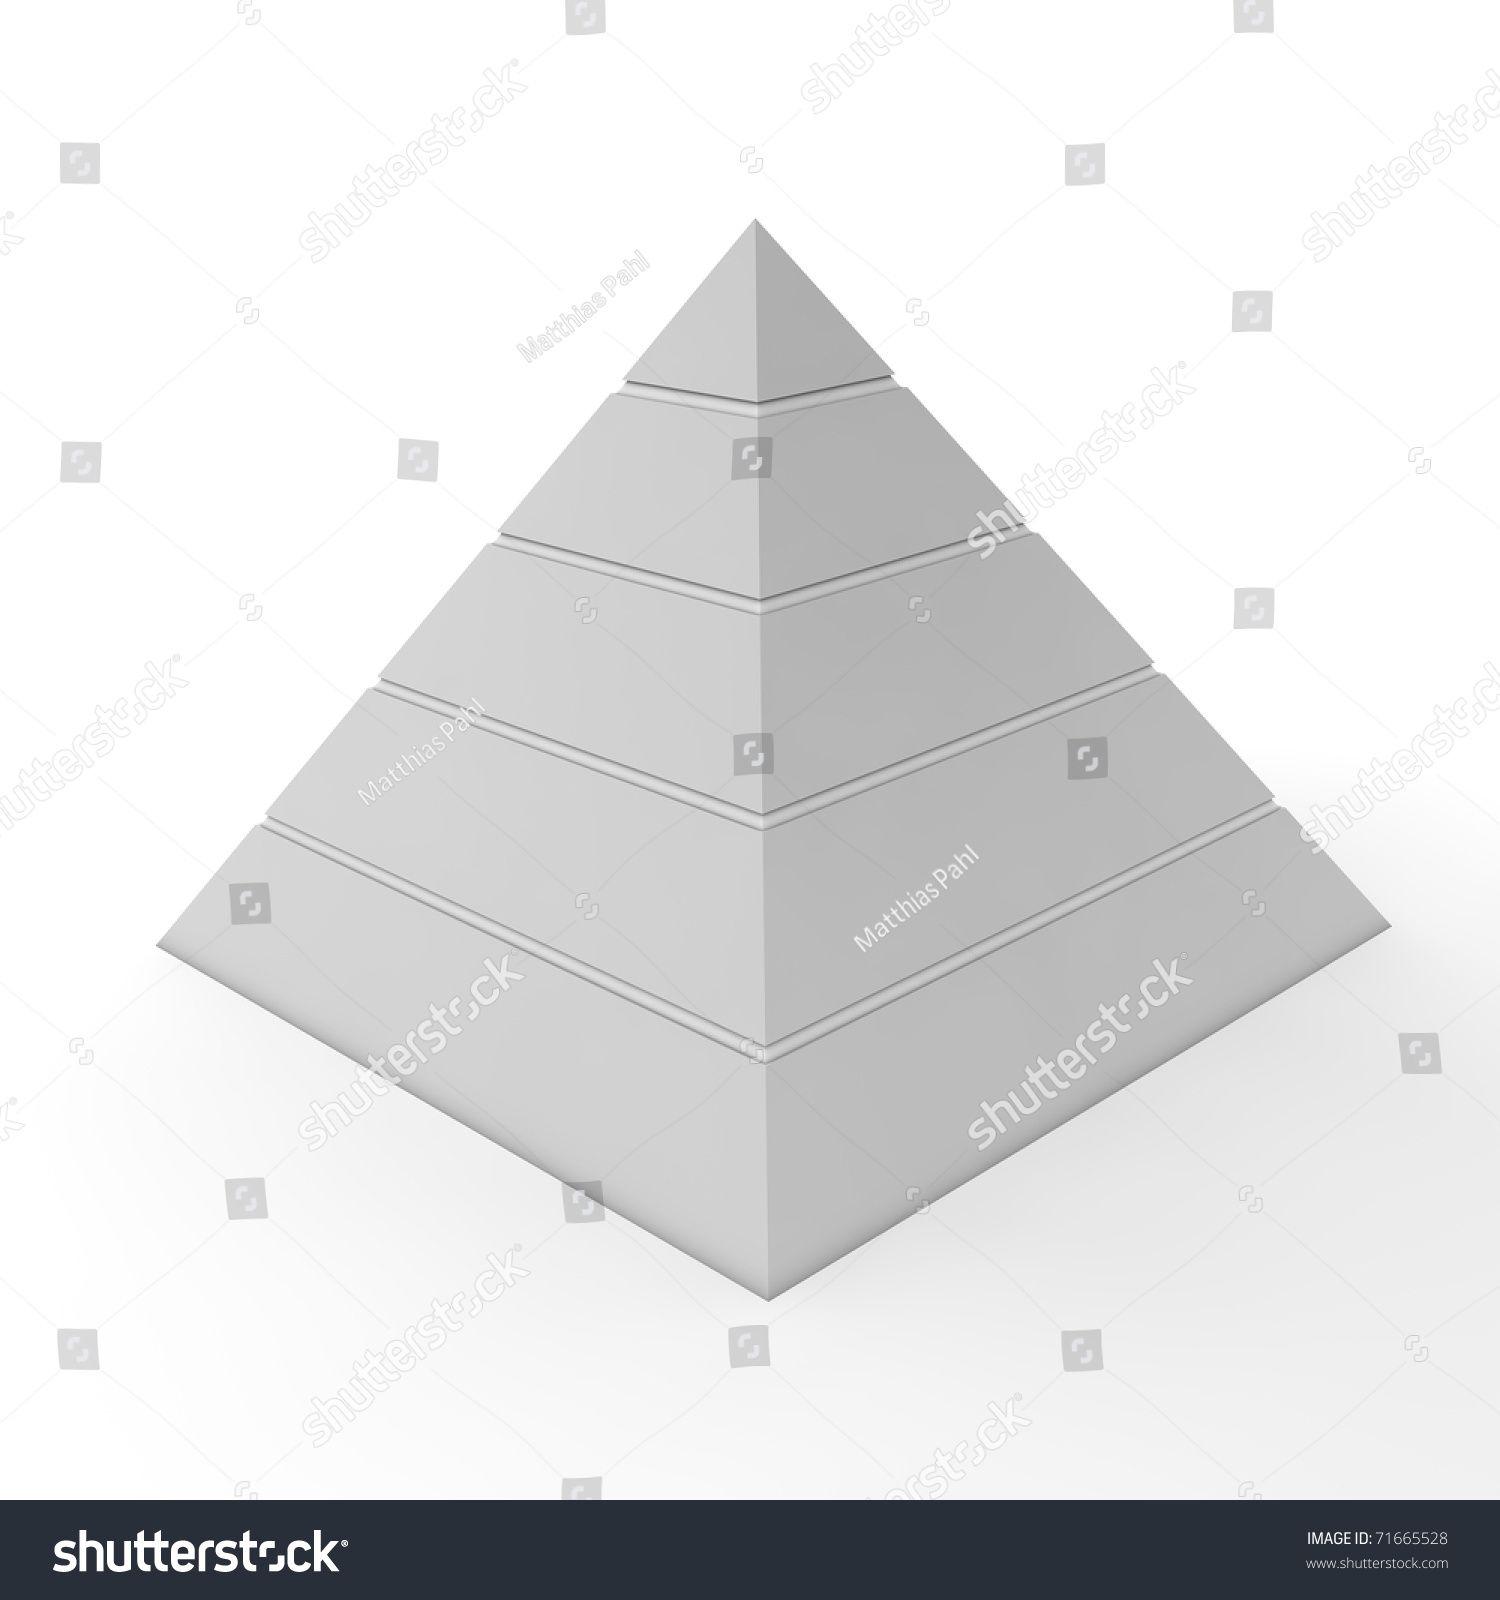 Attractive Pyramid Template Illustration - Examples Professional ...